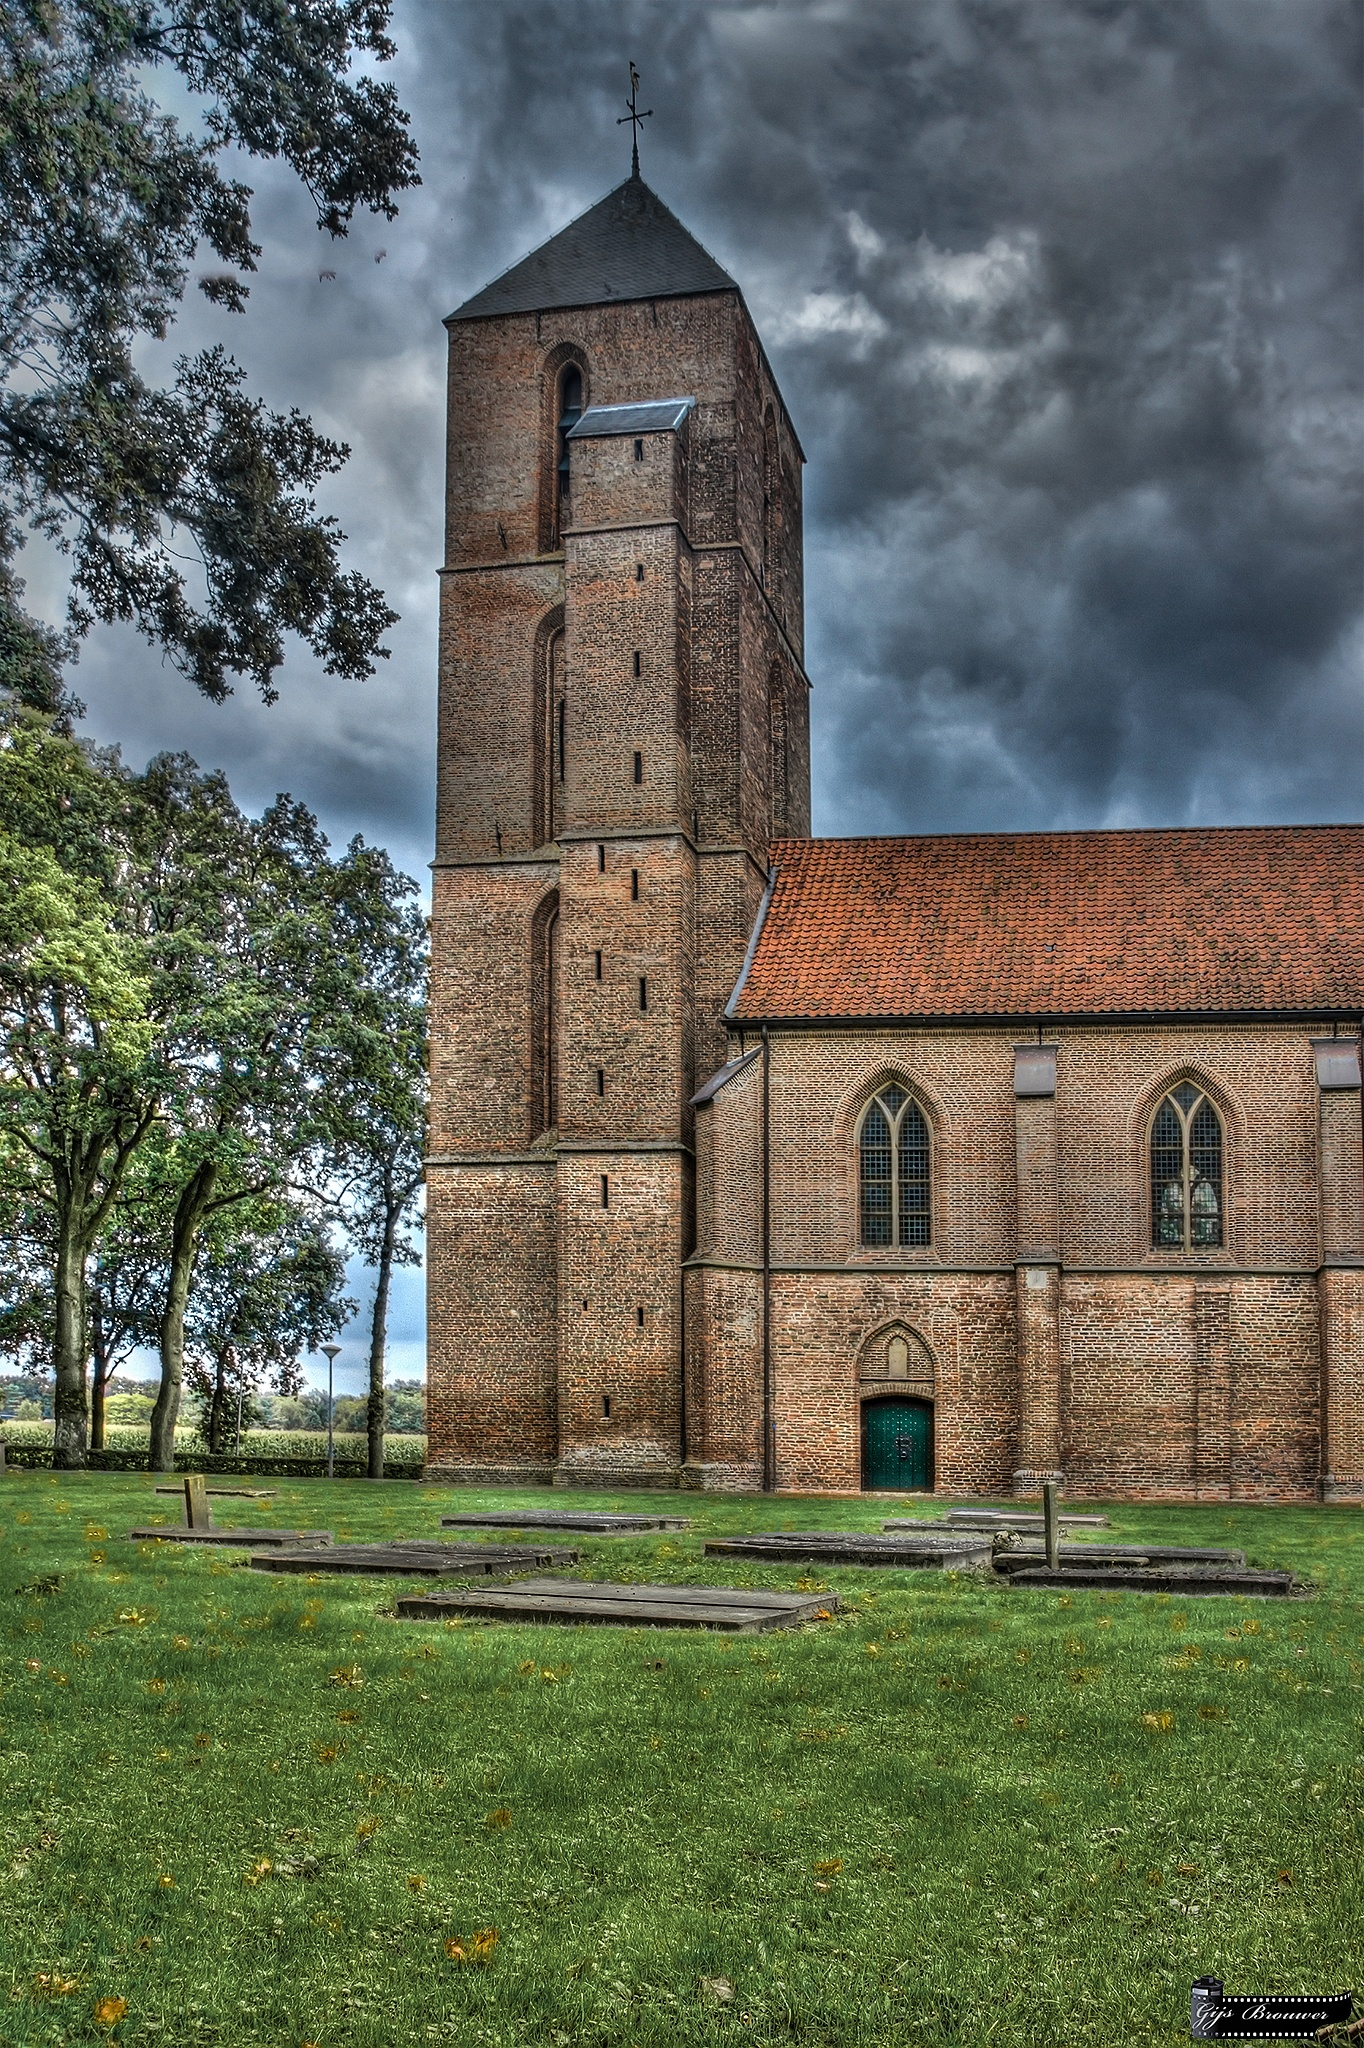 Ancient tombs at the Havelter Church by Gijs Brouwer